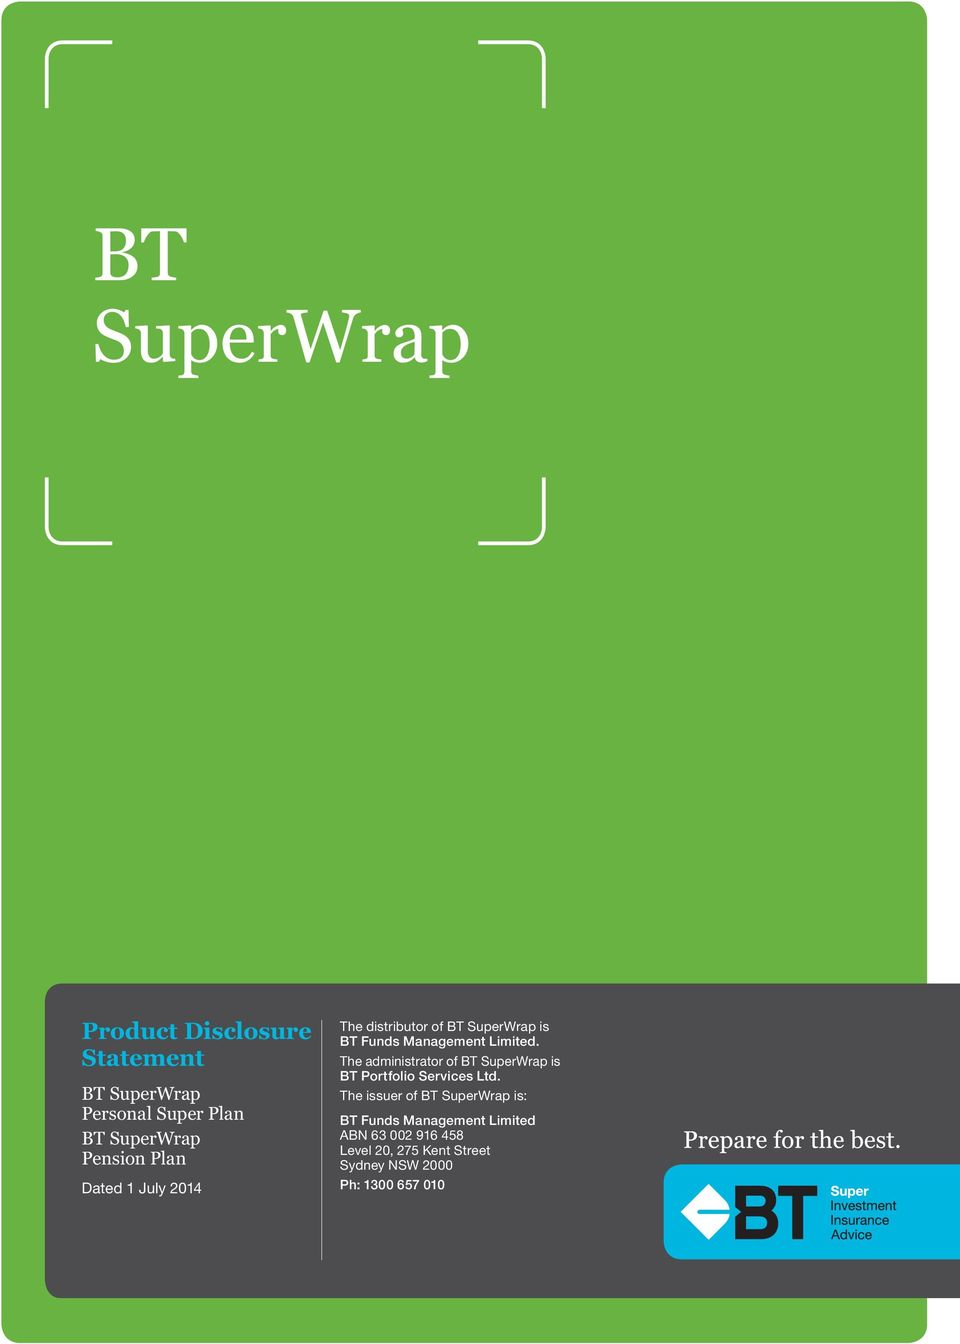 The administrator of BT SuperWrap is BT Portfolio Services Ltd.